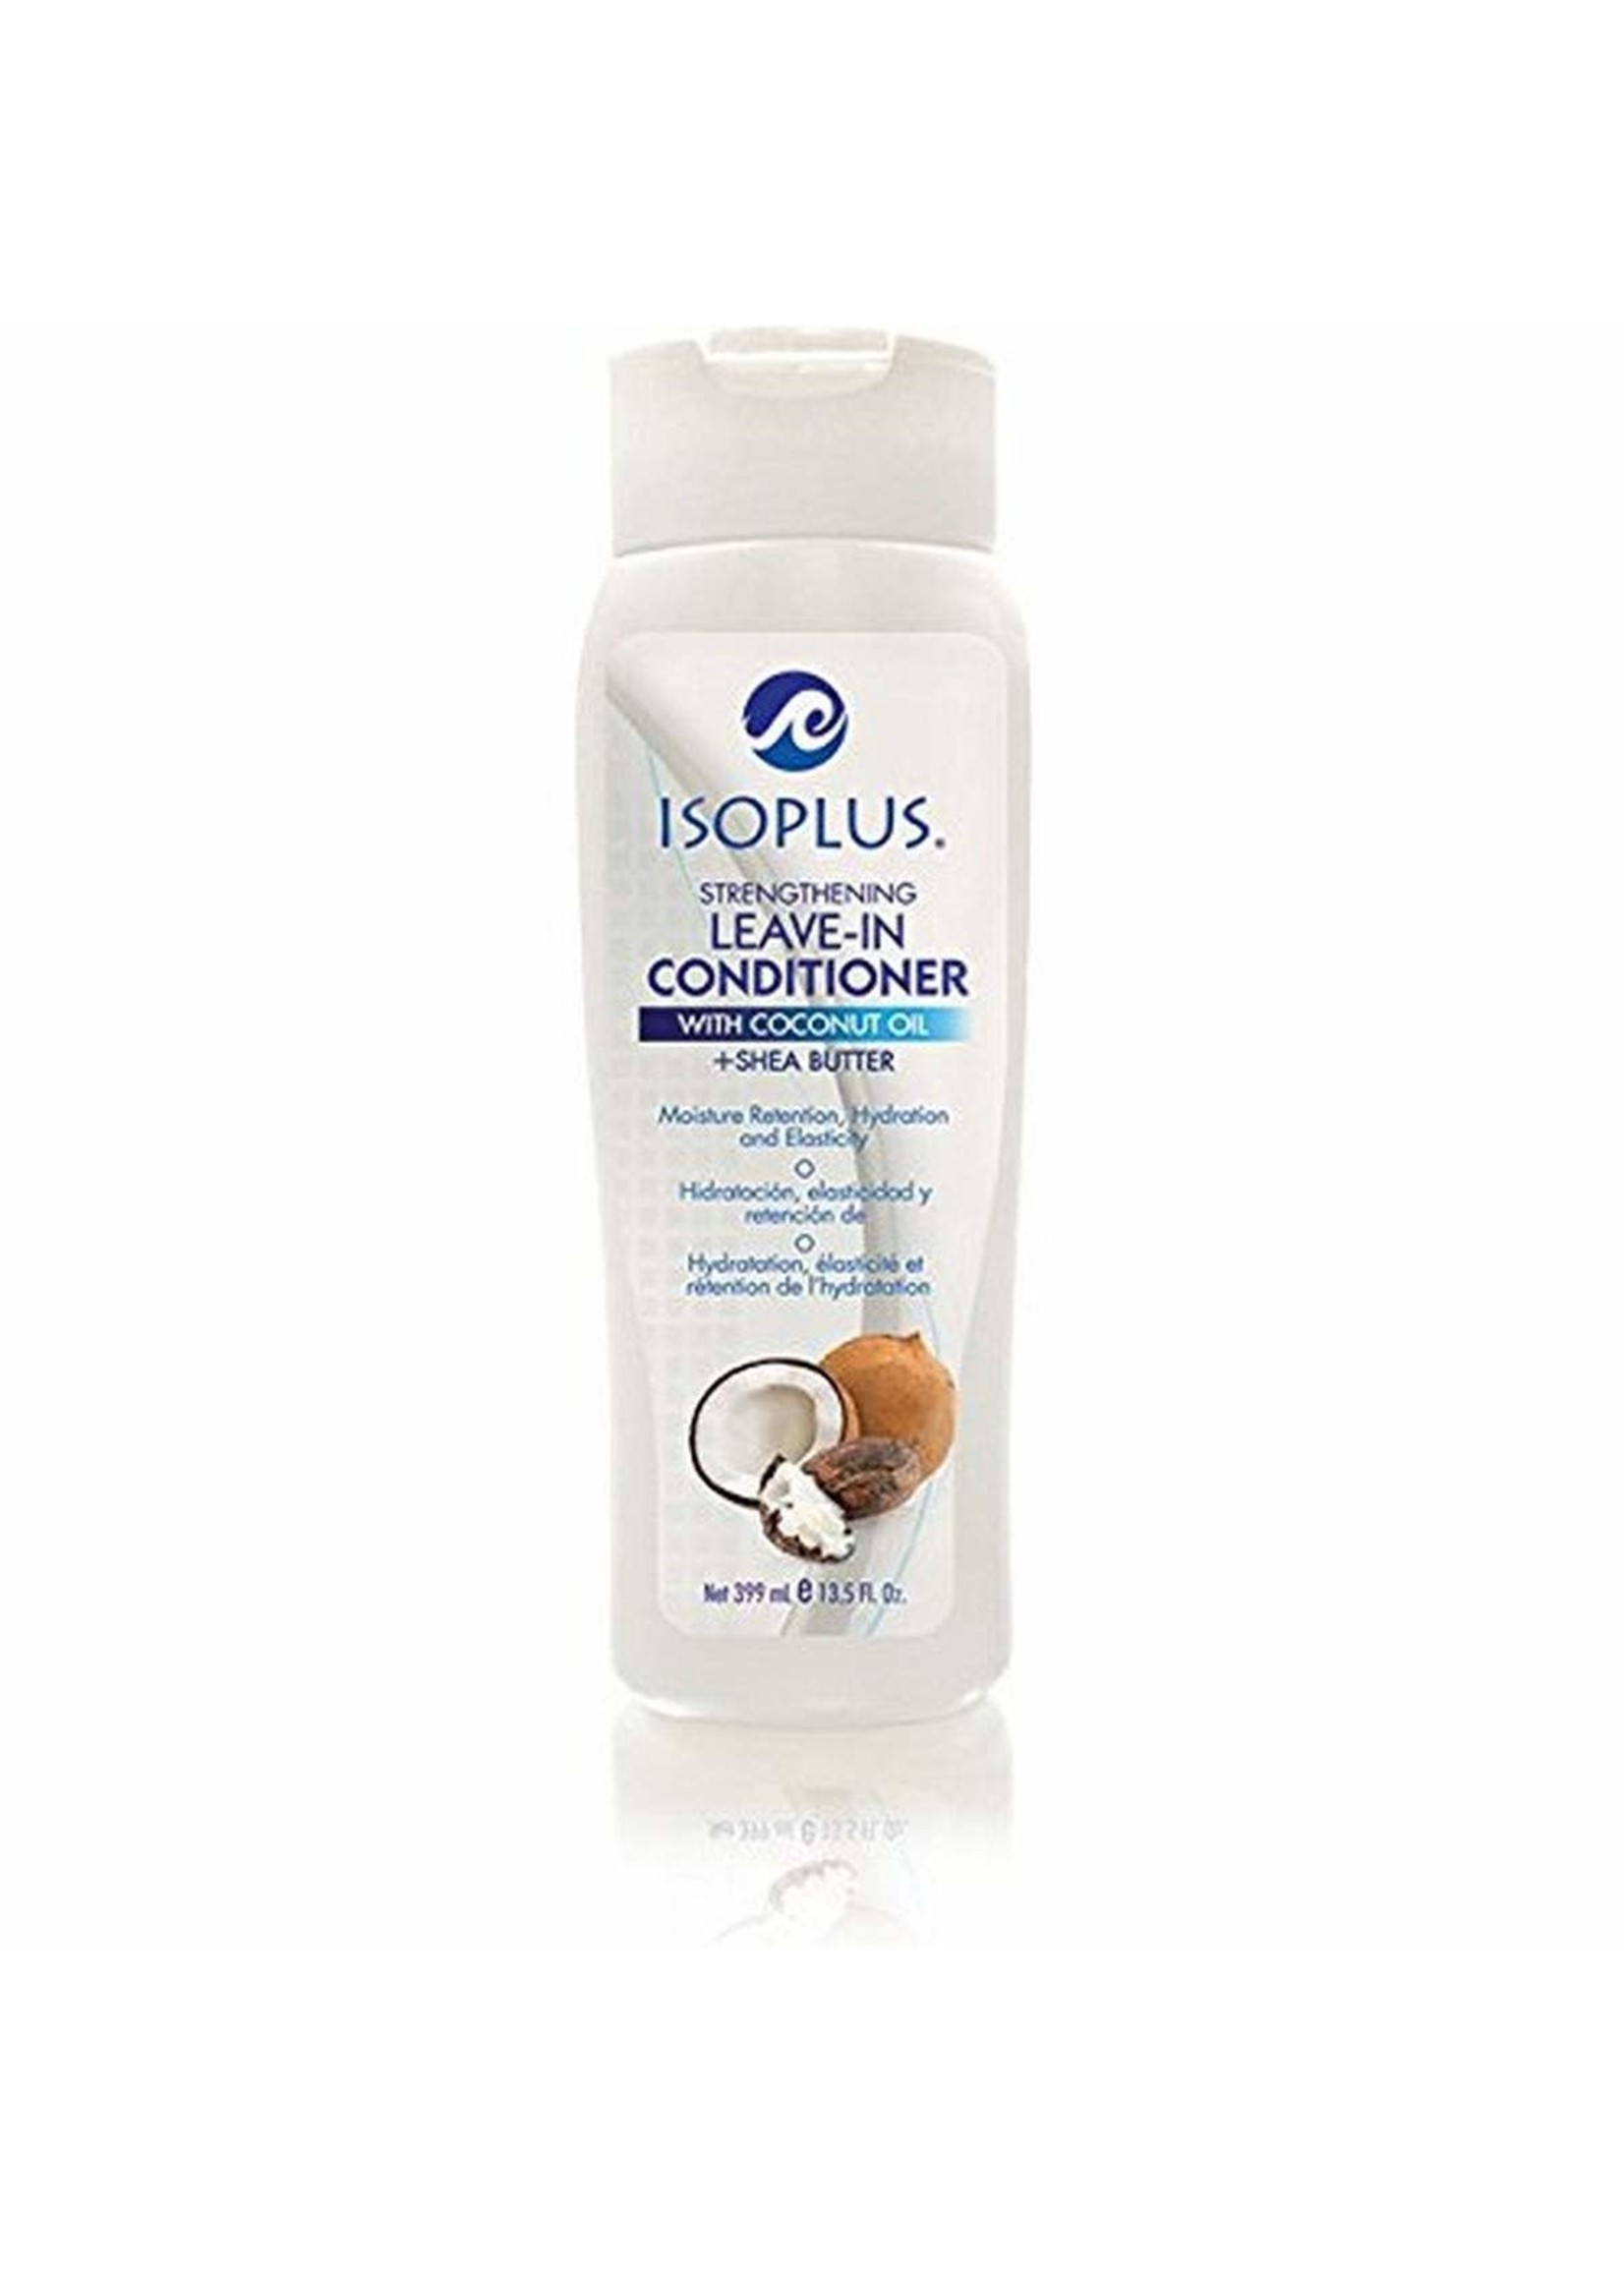 Isoplus Strengthening Leave-In Conditioner w/Shea